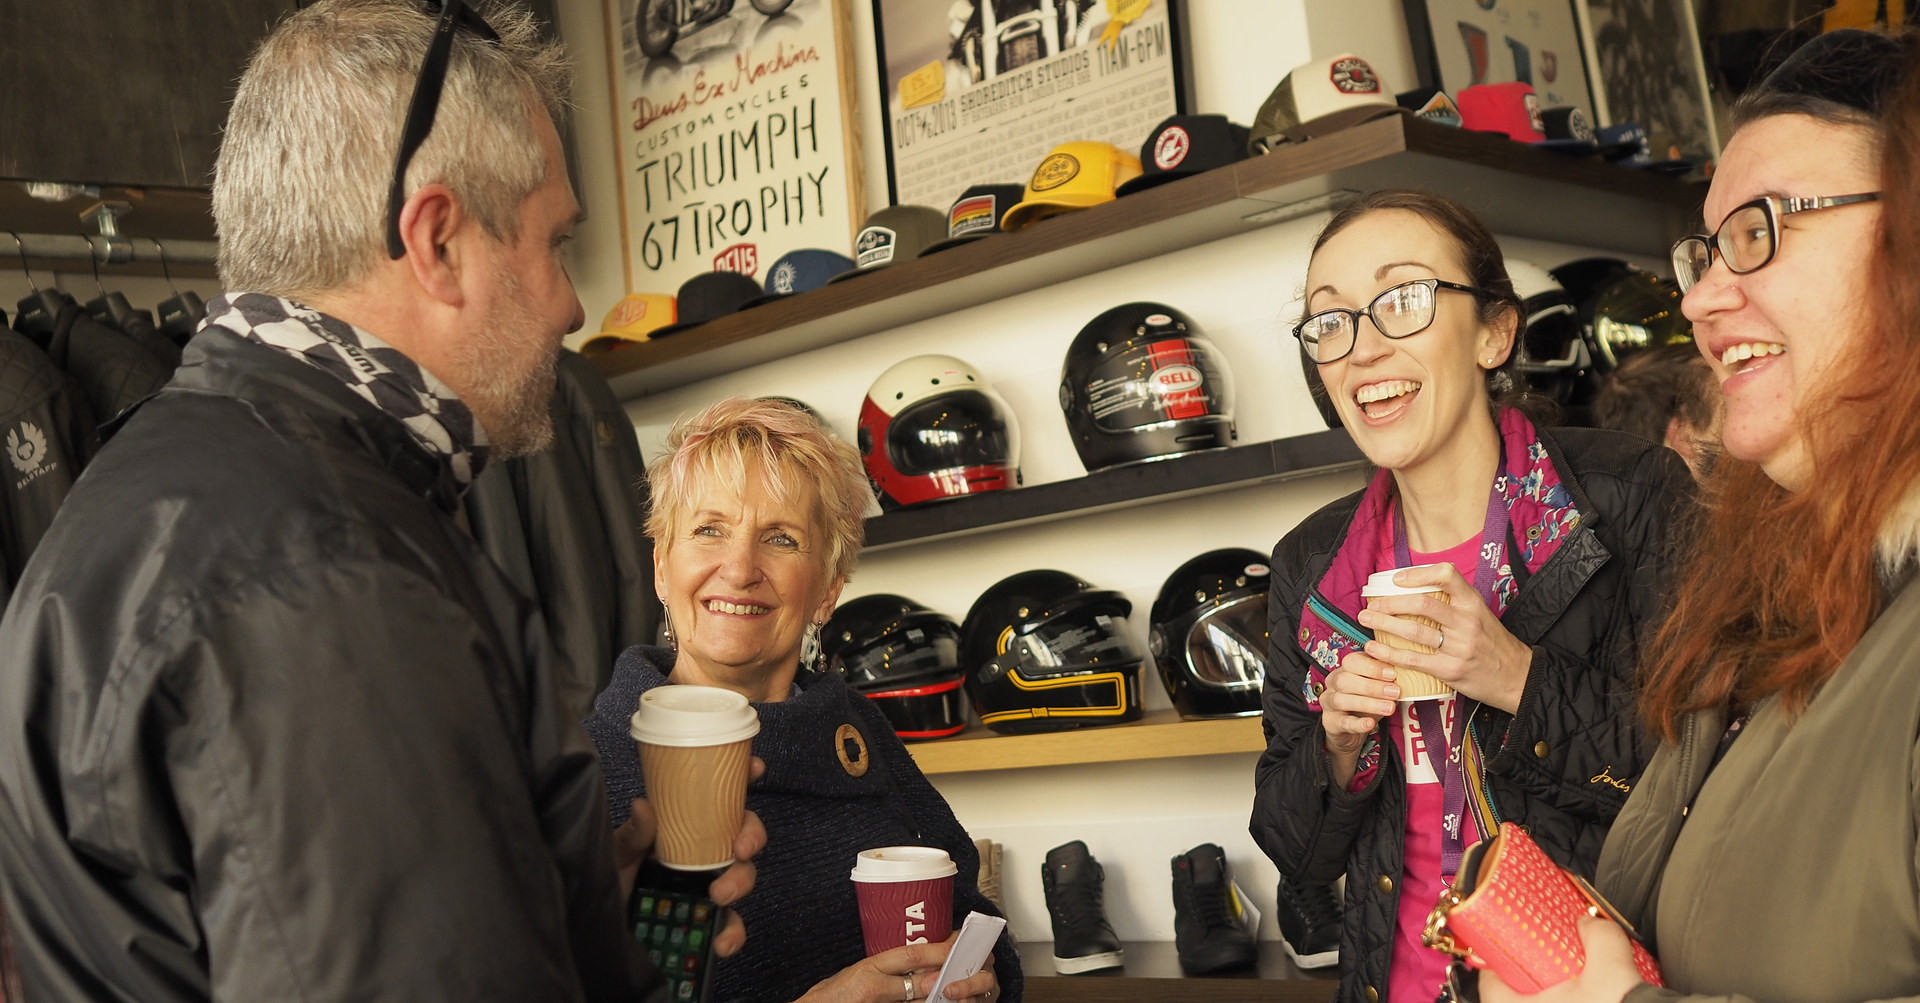 The cafe racer store Brighton